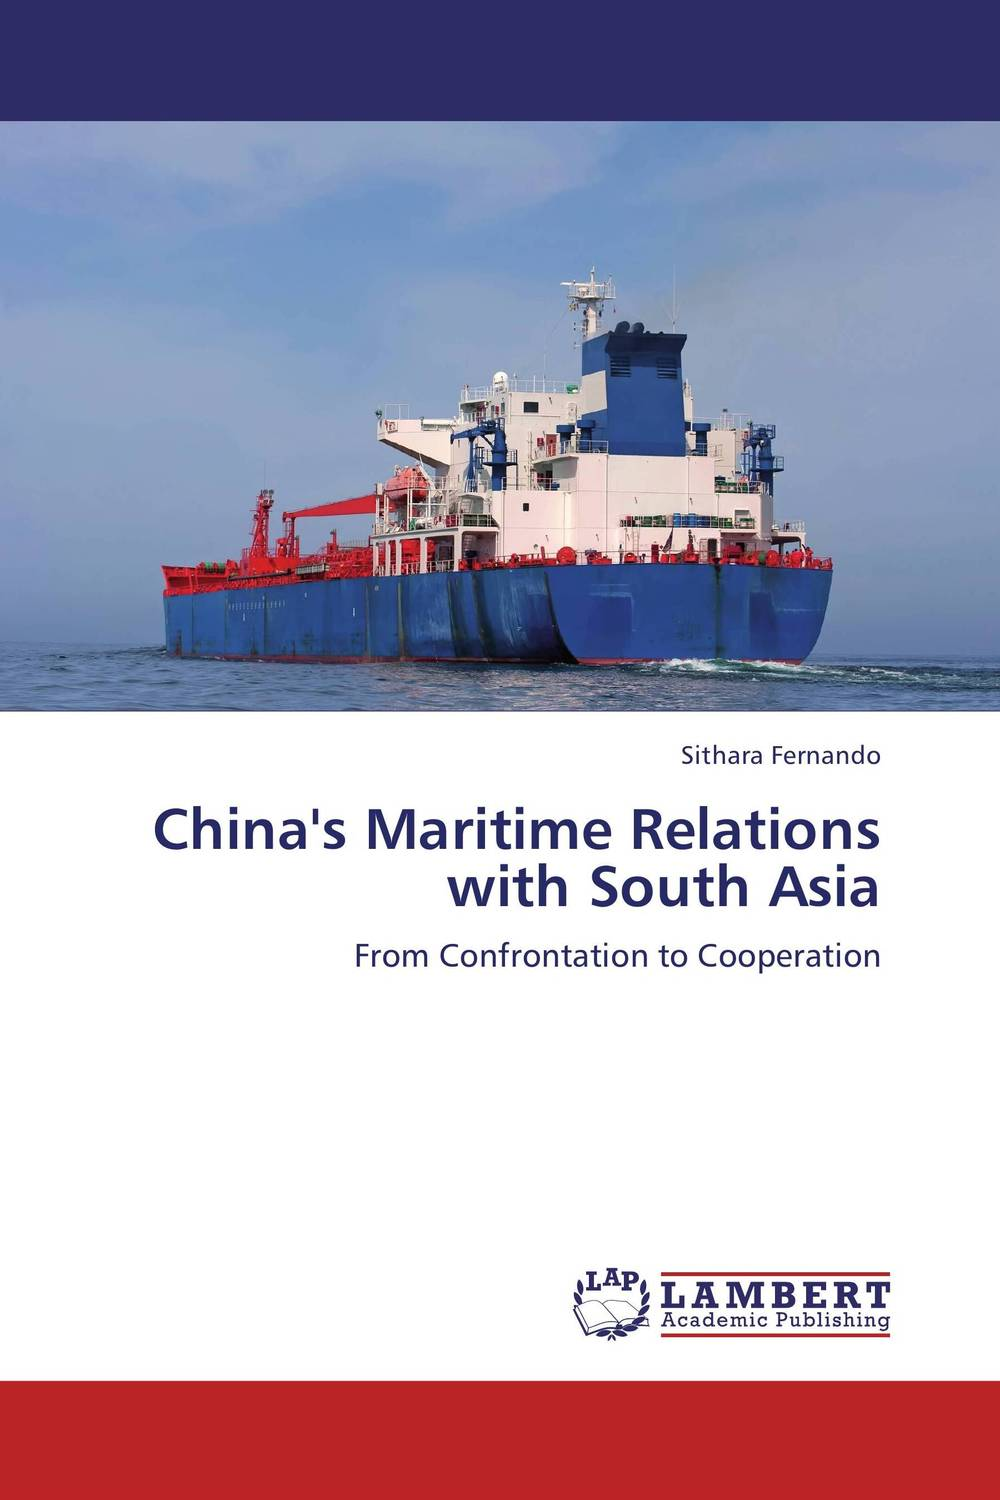 China's Maritime Relations with South Asia venice a maritime republic